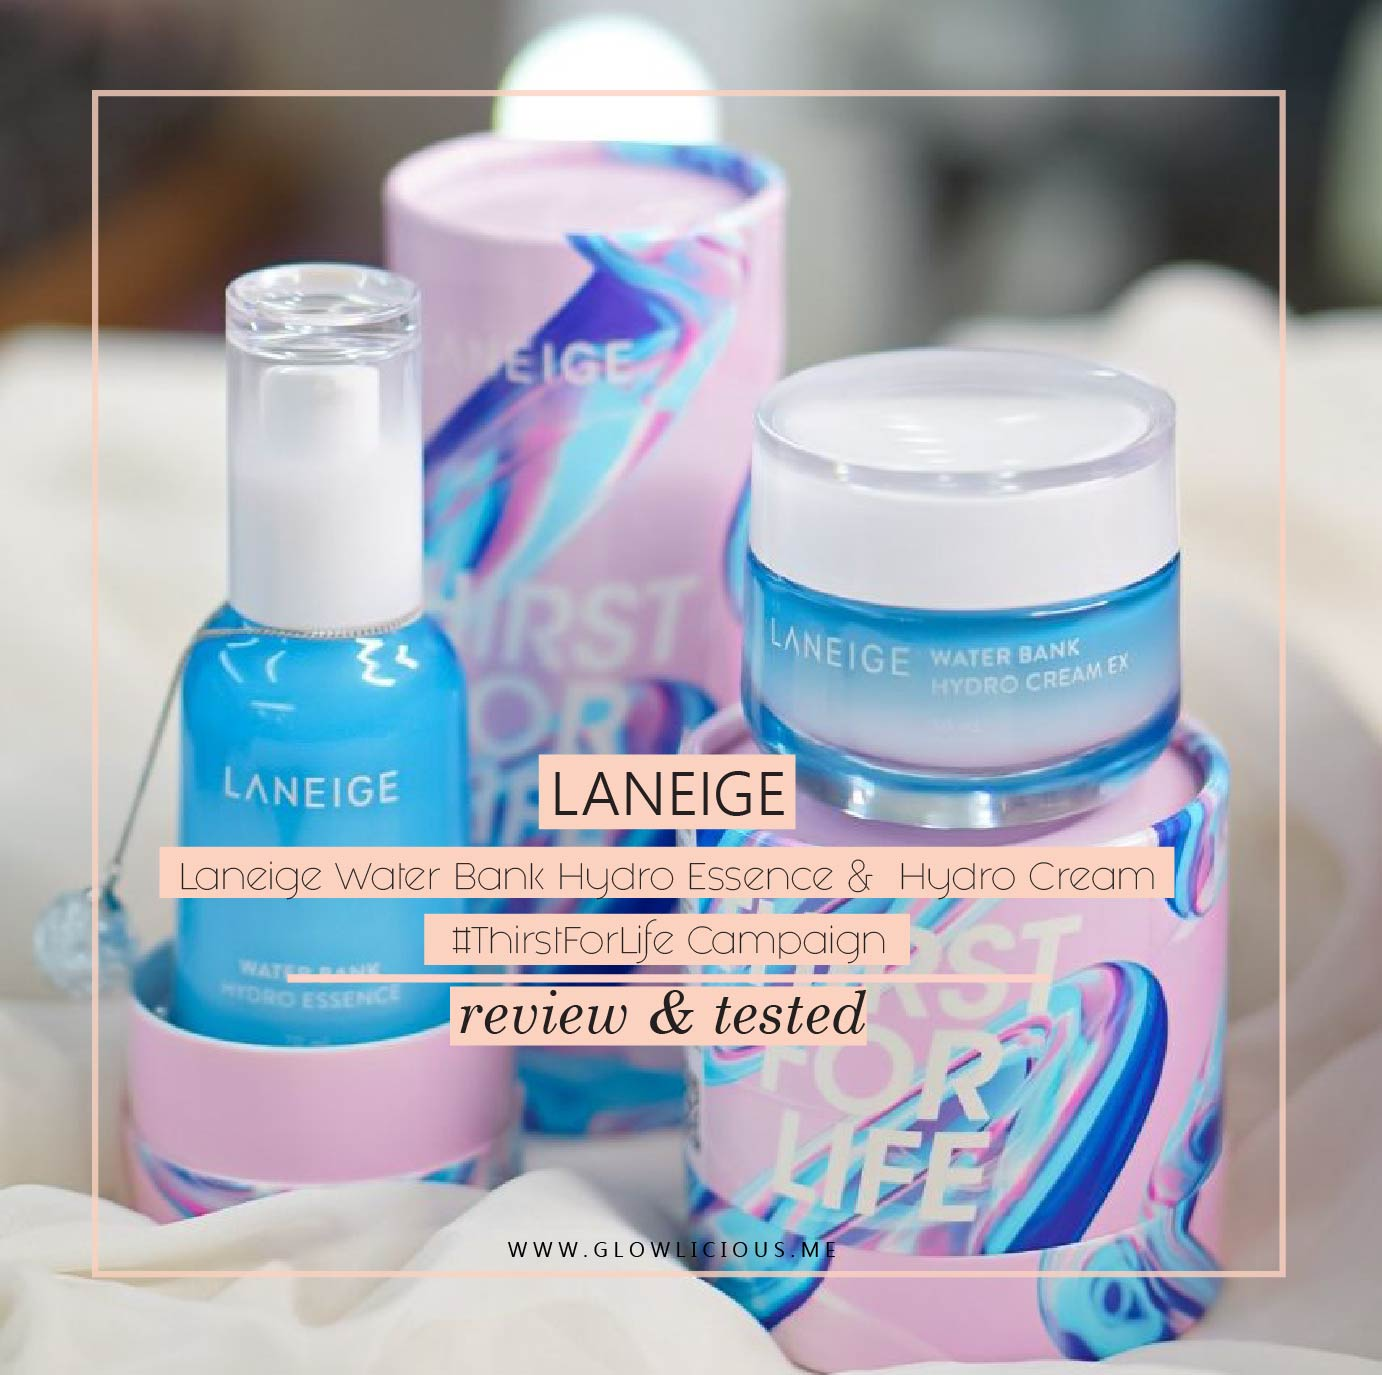 Review Laneige Water Bank Hydro Essence & Water Bank Hydro Cream + #ThirstForLife Campaign 100-28